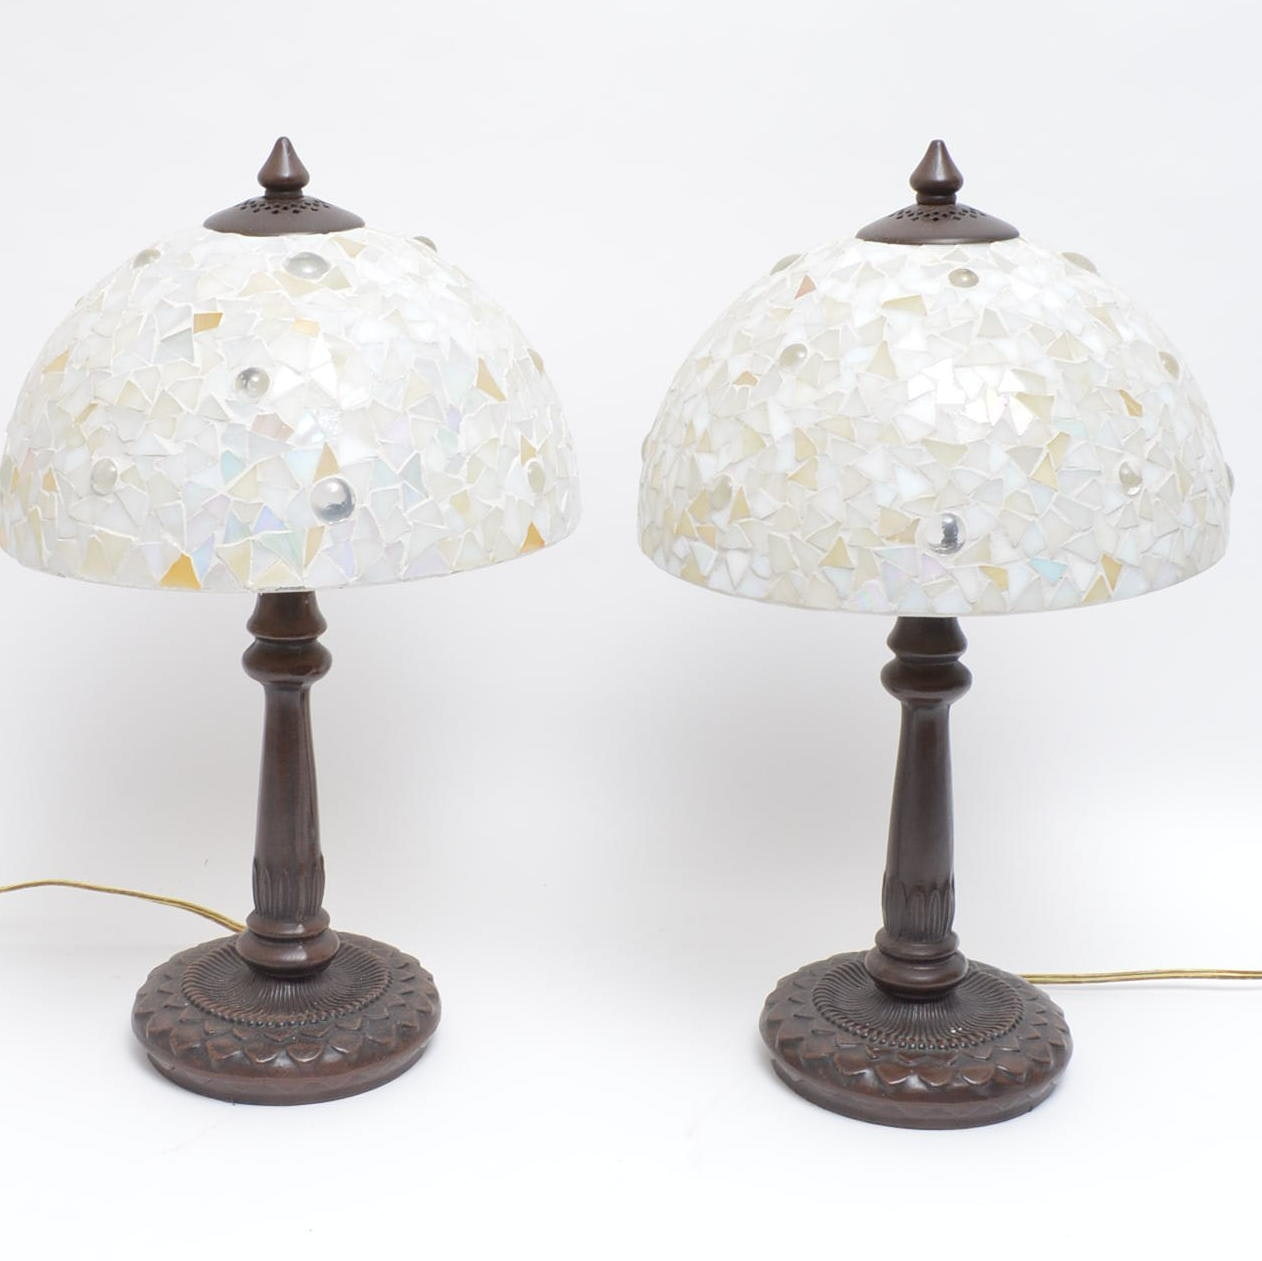 Bronze Tone Table Lamps with Mosaic Shades